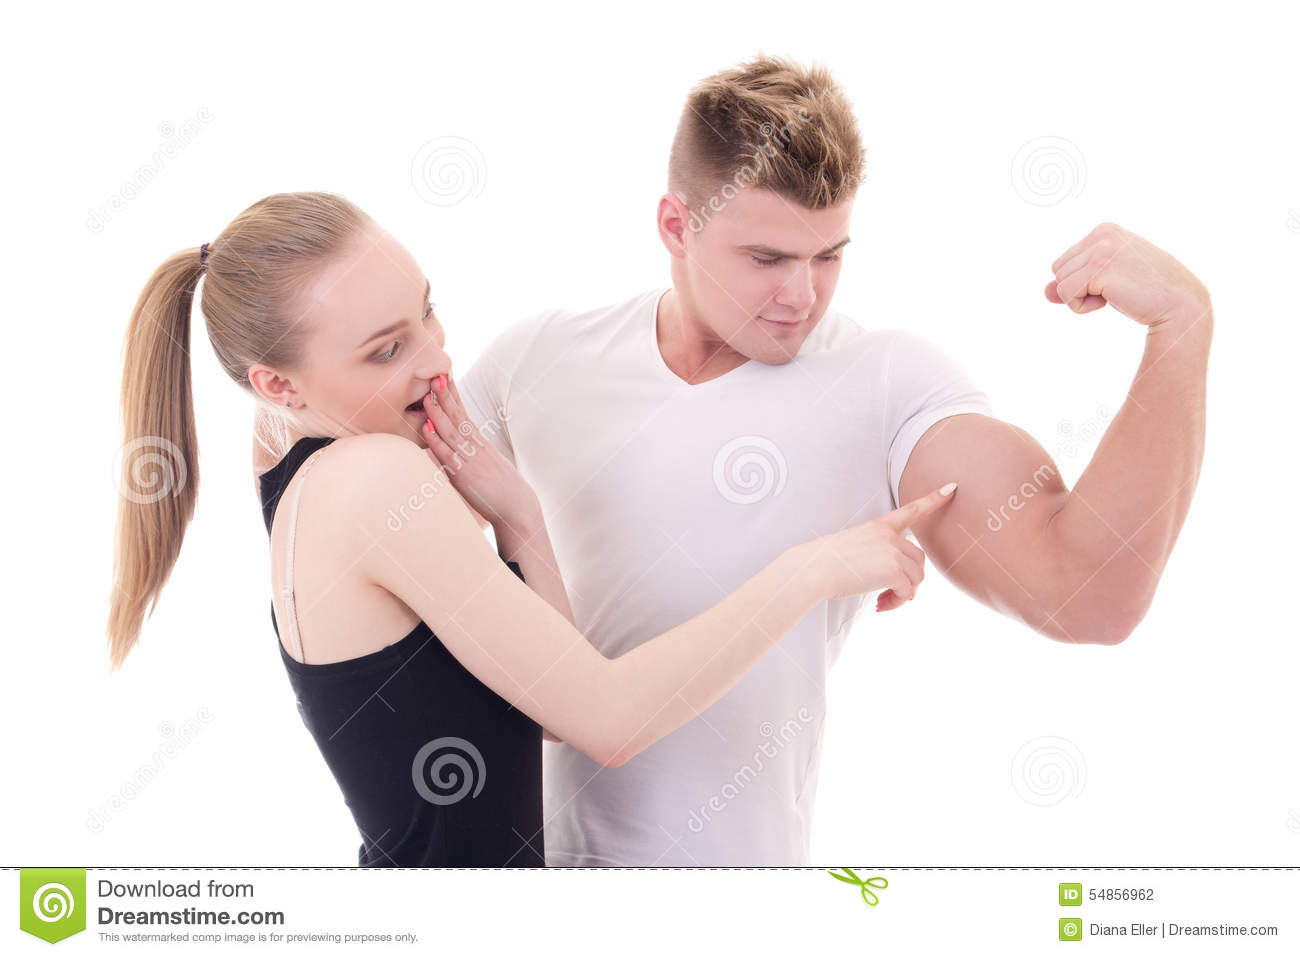 Bodybuilding Concept - Muscular Man Showing His Muscles To